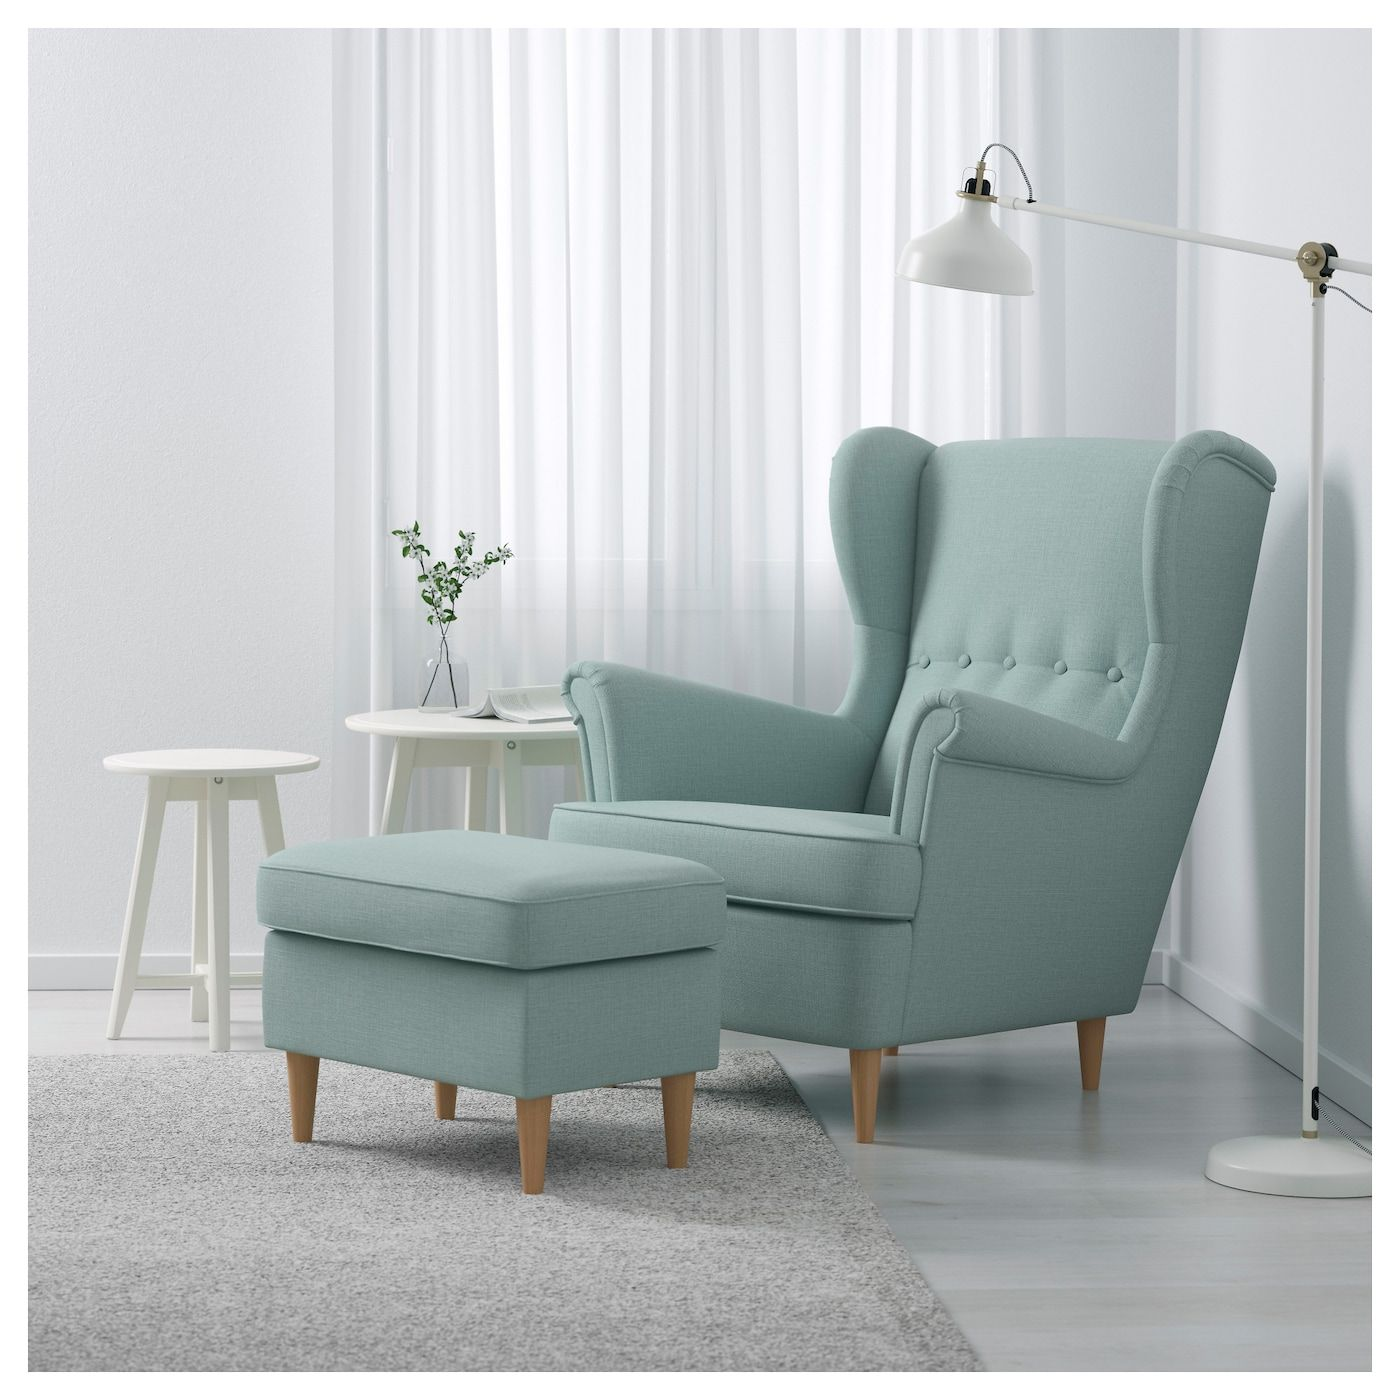 US Furniture and Home Furnishings Σαλόνι σπιτιού